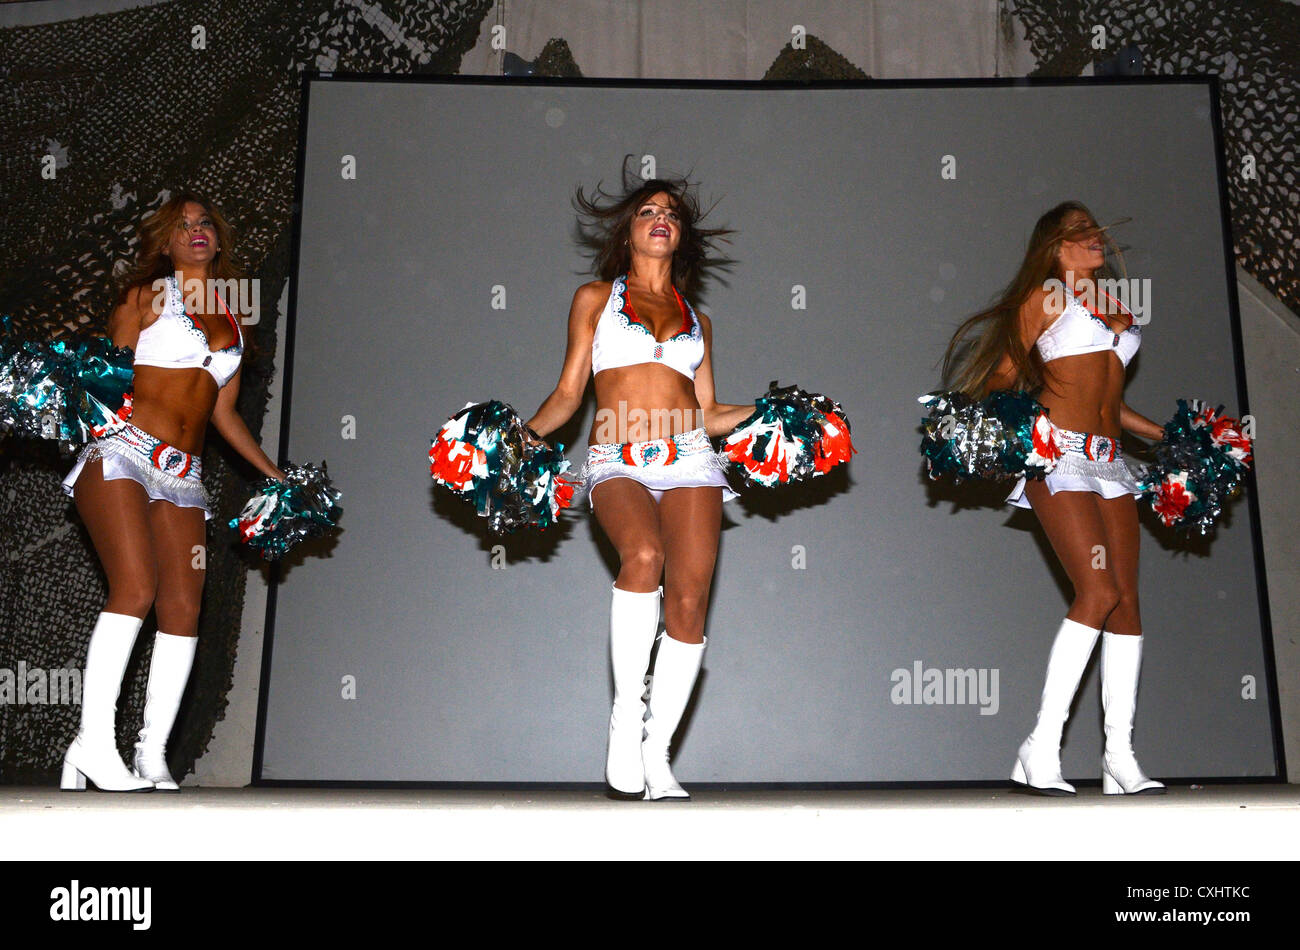 Miami Dolphins cheerleaders Natalie Diaz, Samantha Ruiz and Lily Watters perform for the troops at Bagram Aifield, - Stock Image